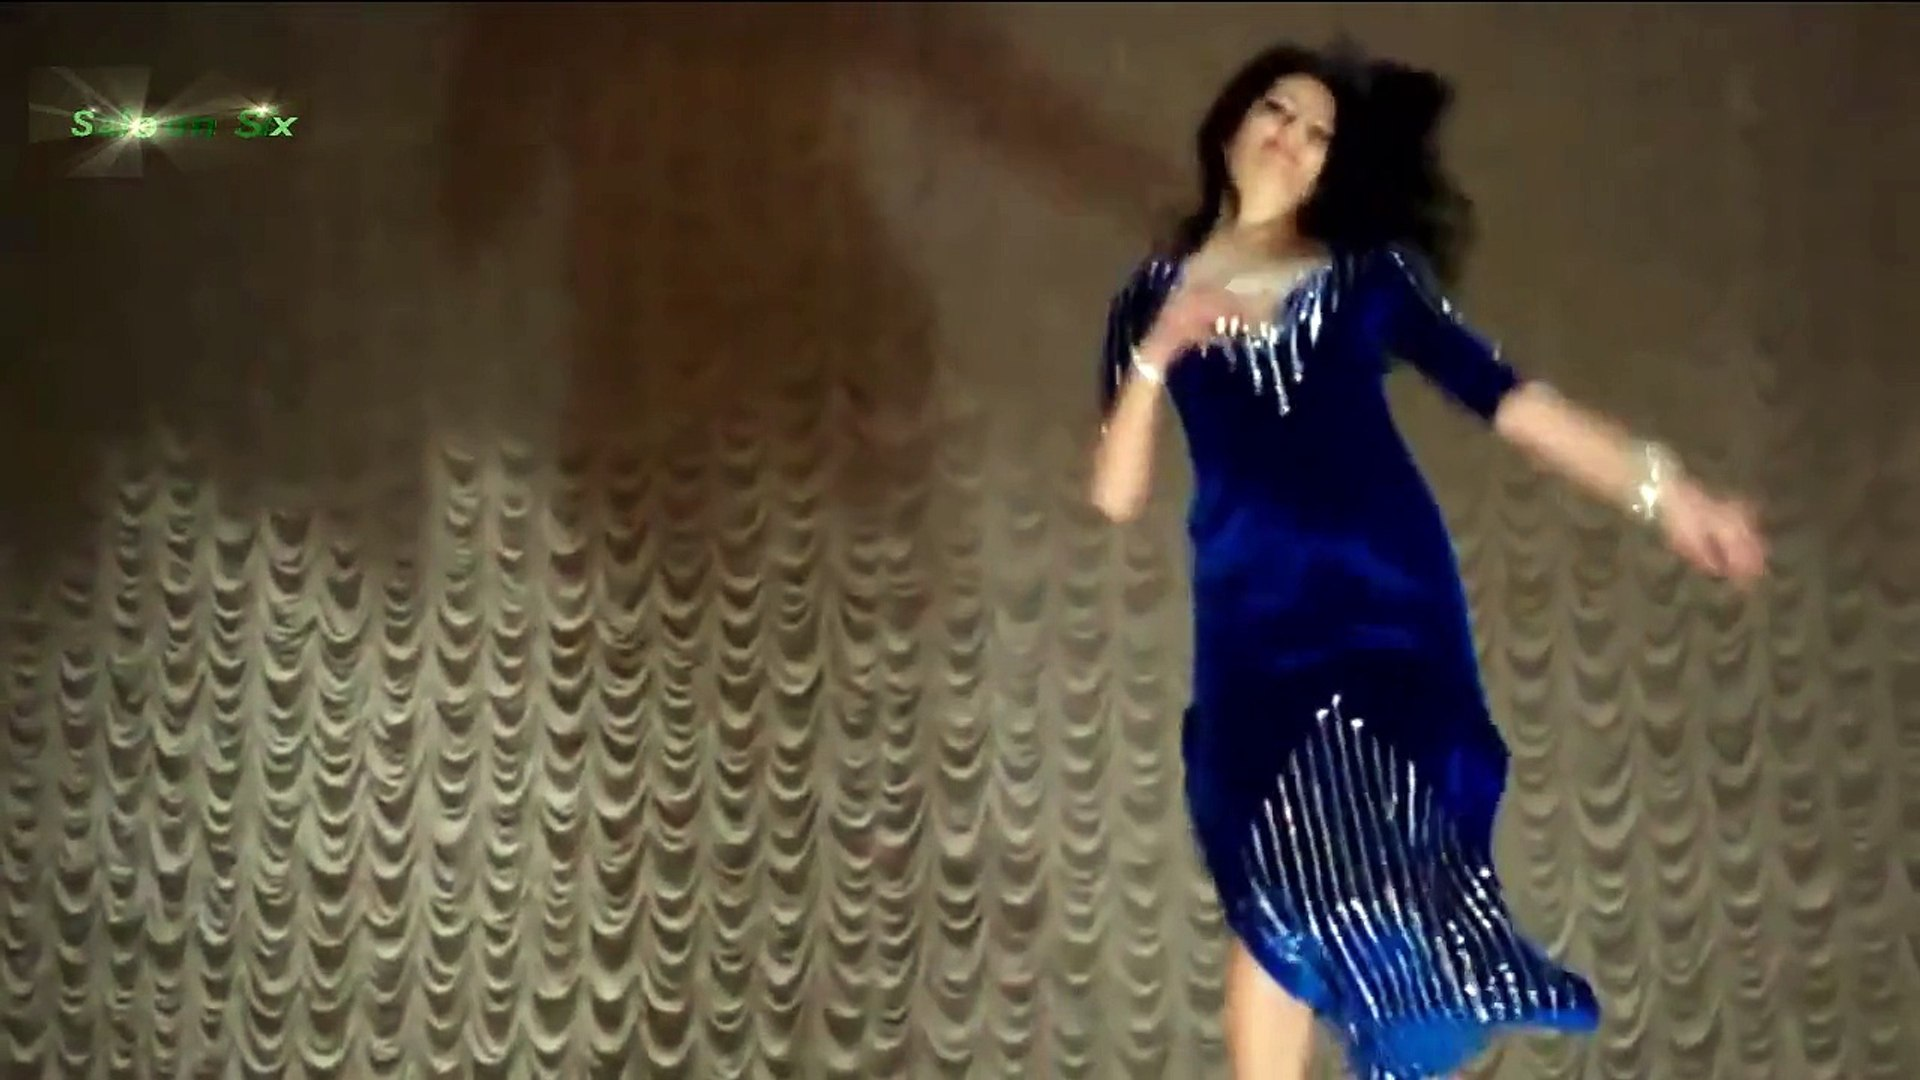 Shama Ashna 2015 Song - Pashto Remix Song 2015 - Pashto New Song 2015